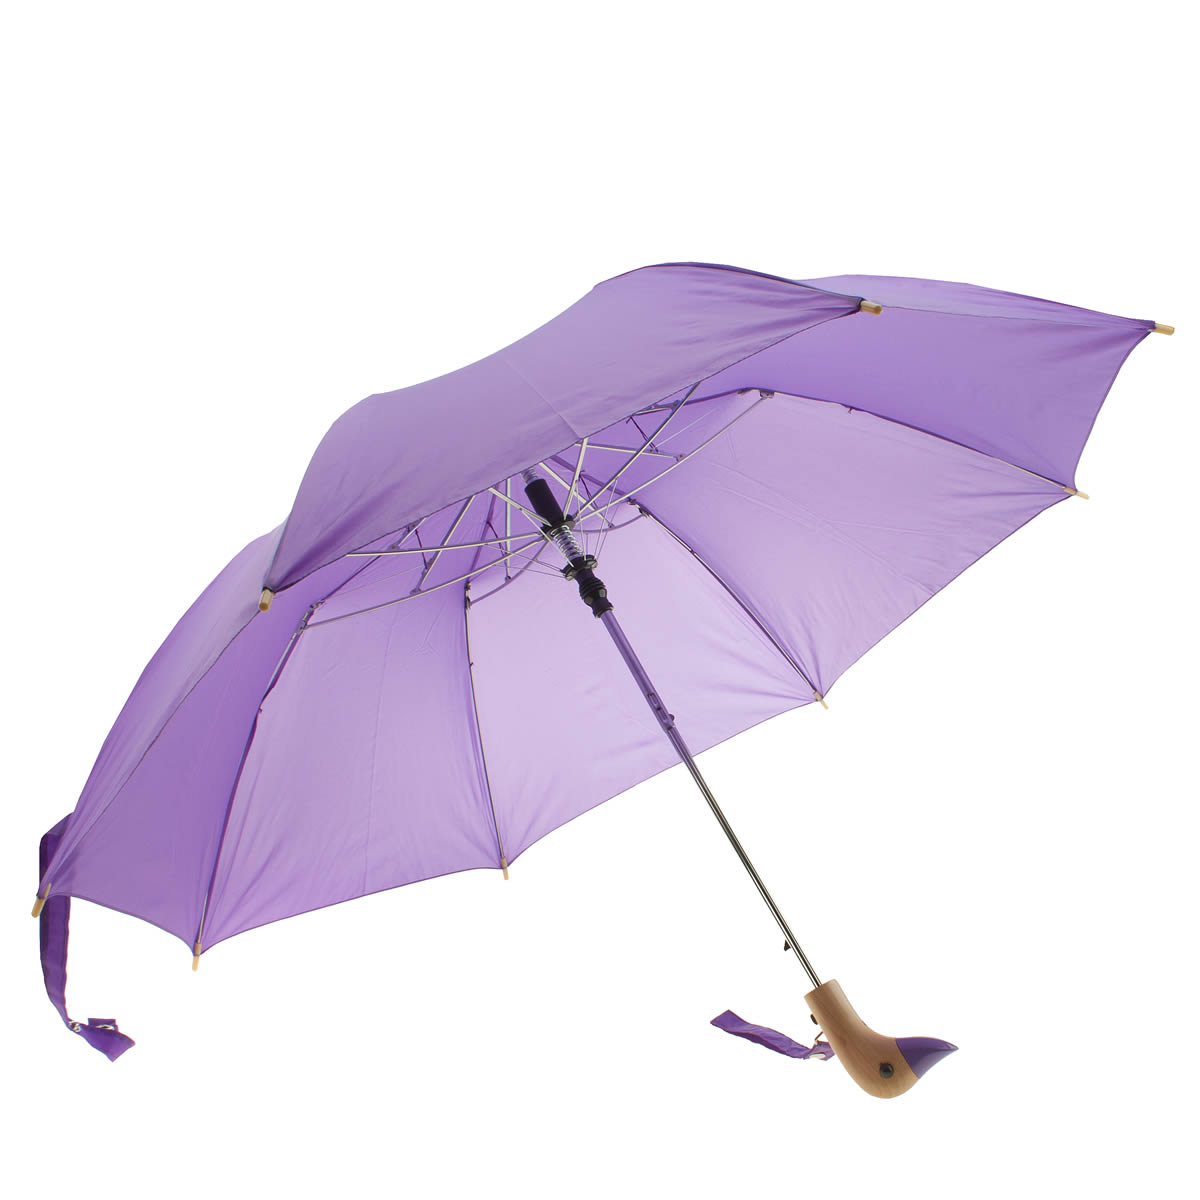 original duckhead Original Duckhead Purple Umbrella Accessory